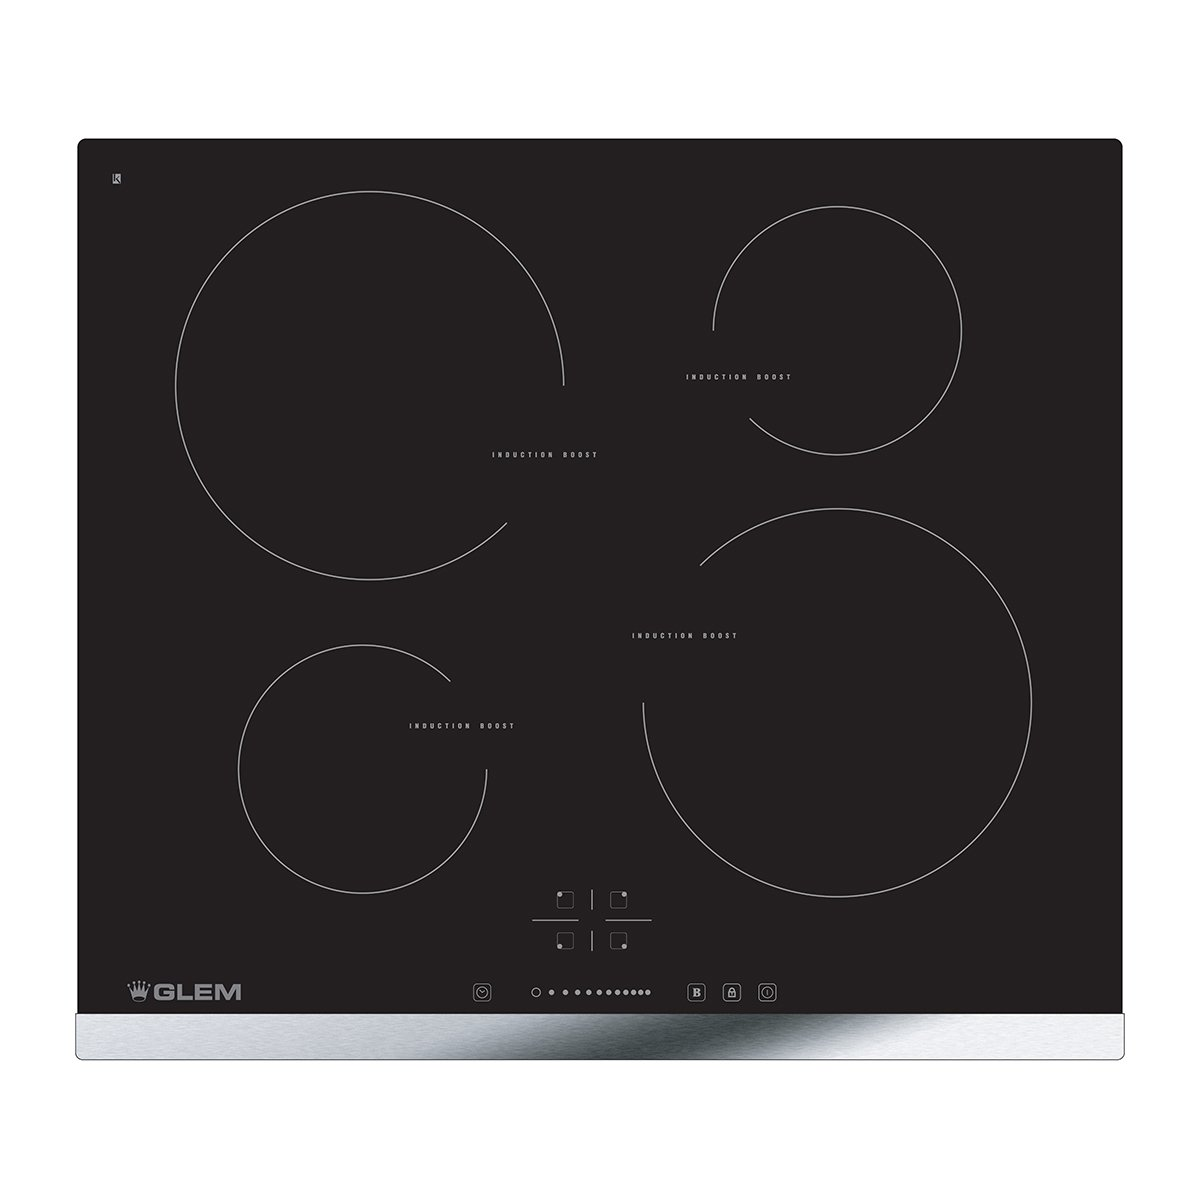 Induction Cooktop Made In Germany ~ New glem glind b induction cooktop ebay